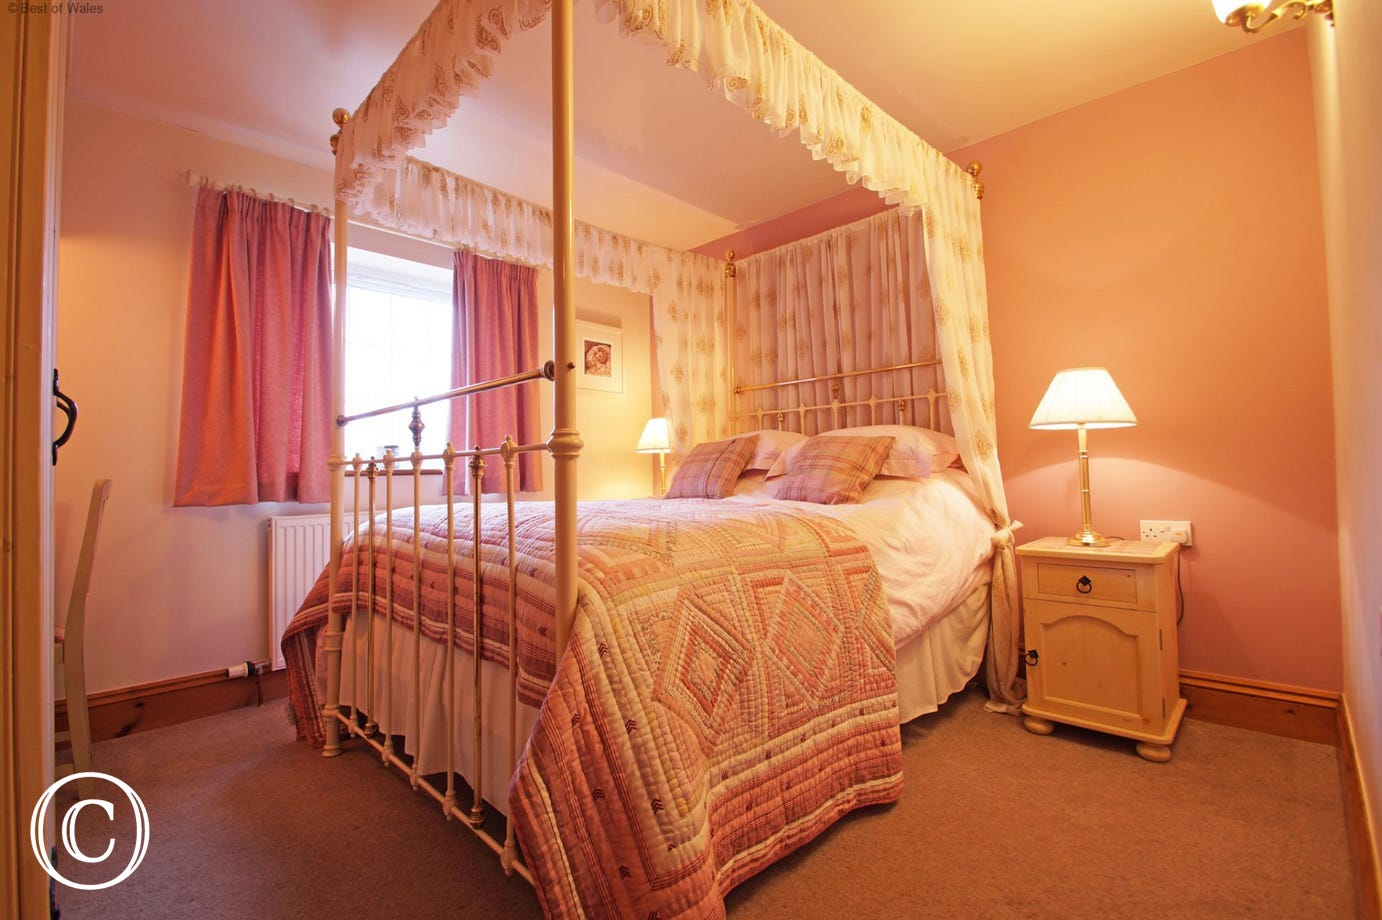 5 star North Wales self catering cottage - 4 poster double bed